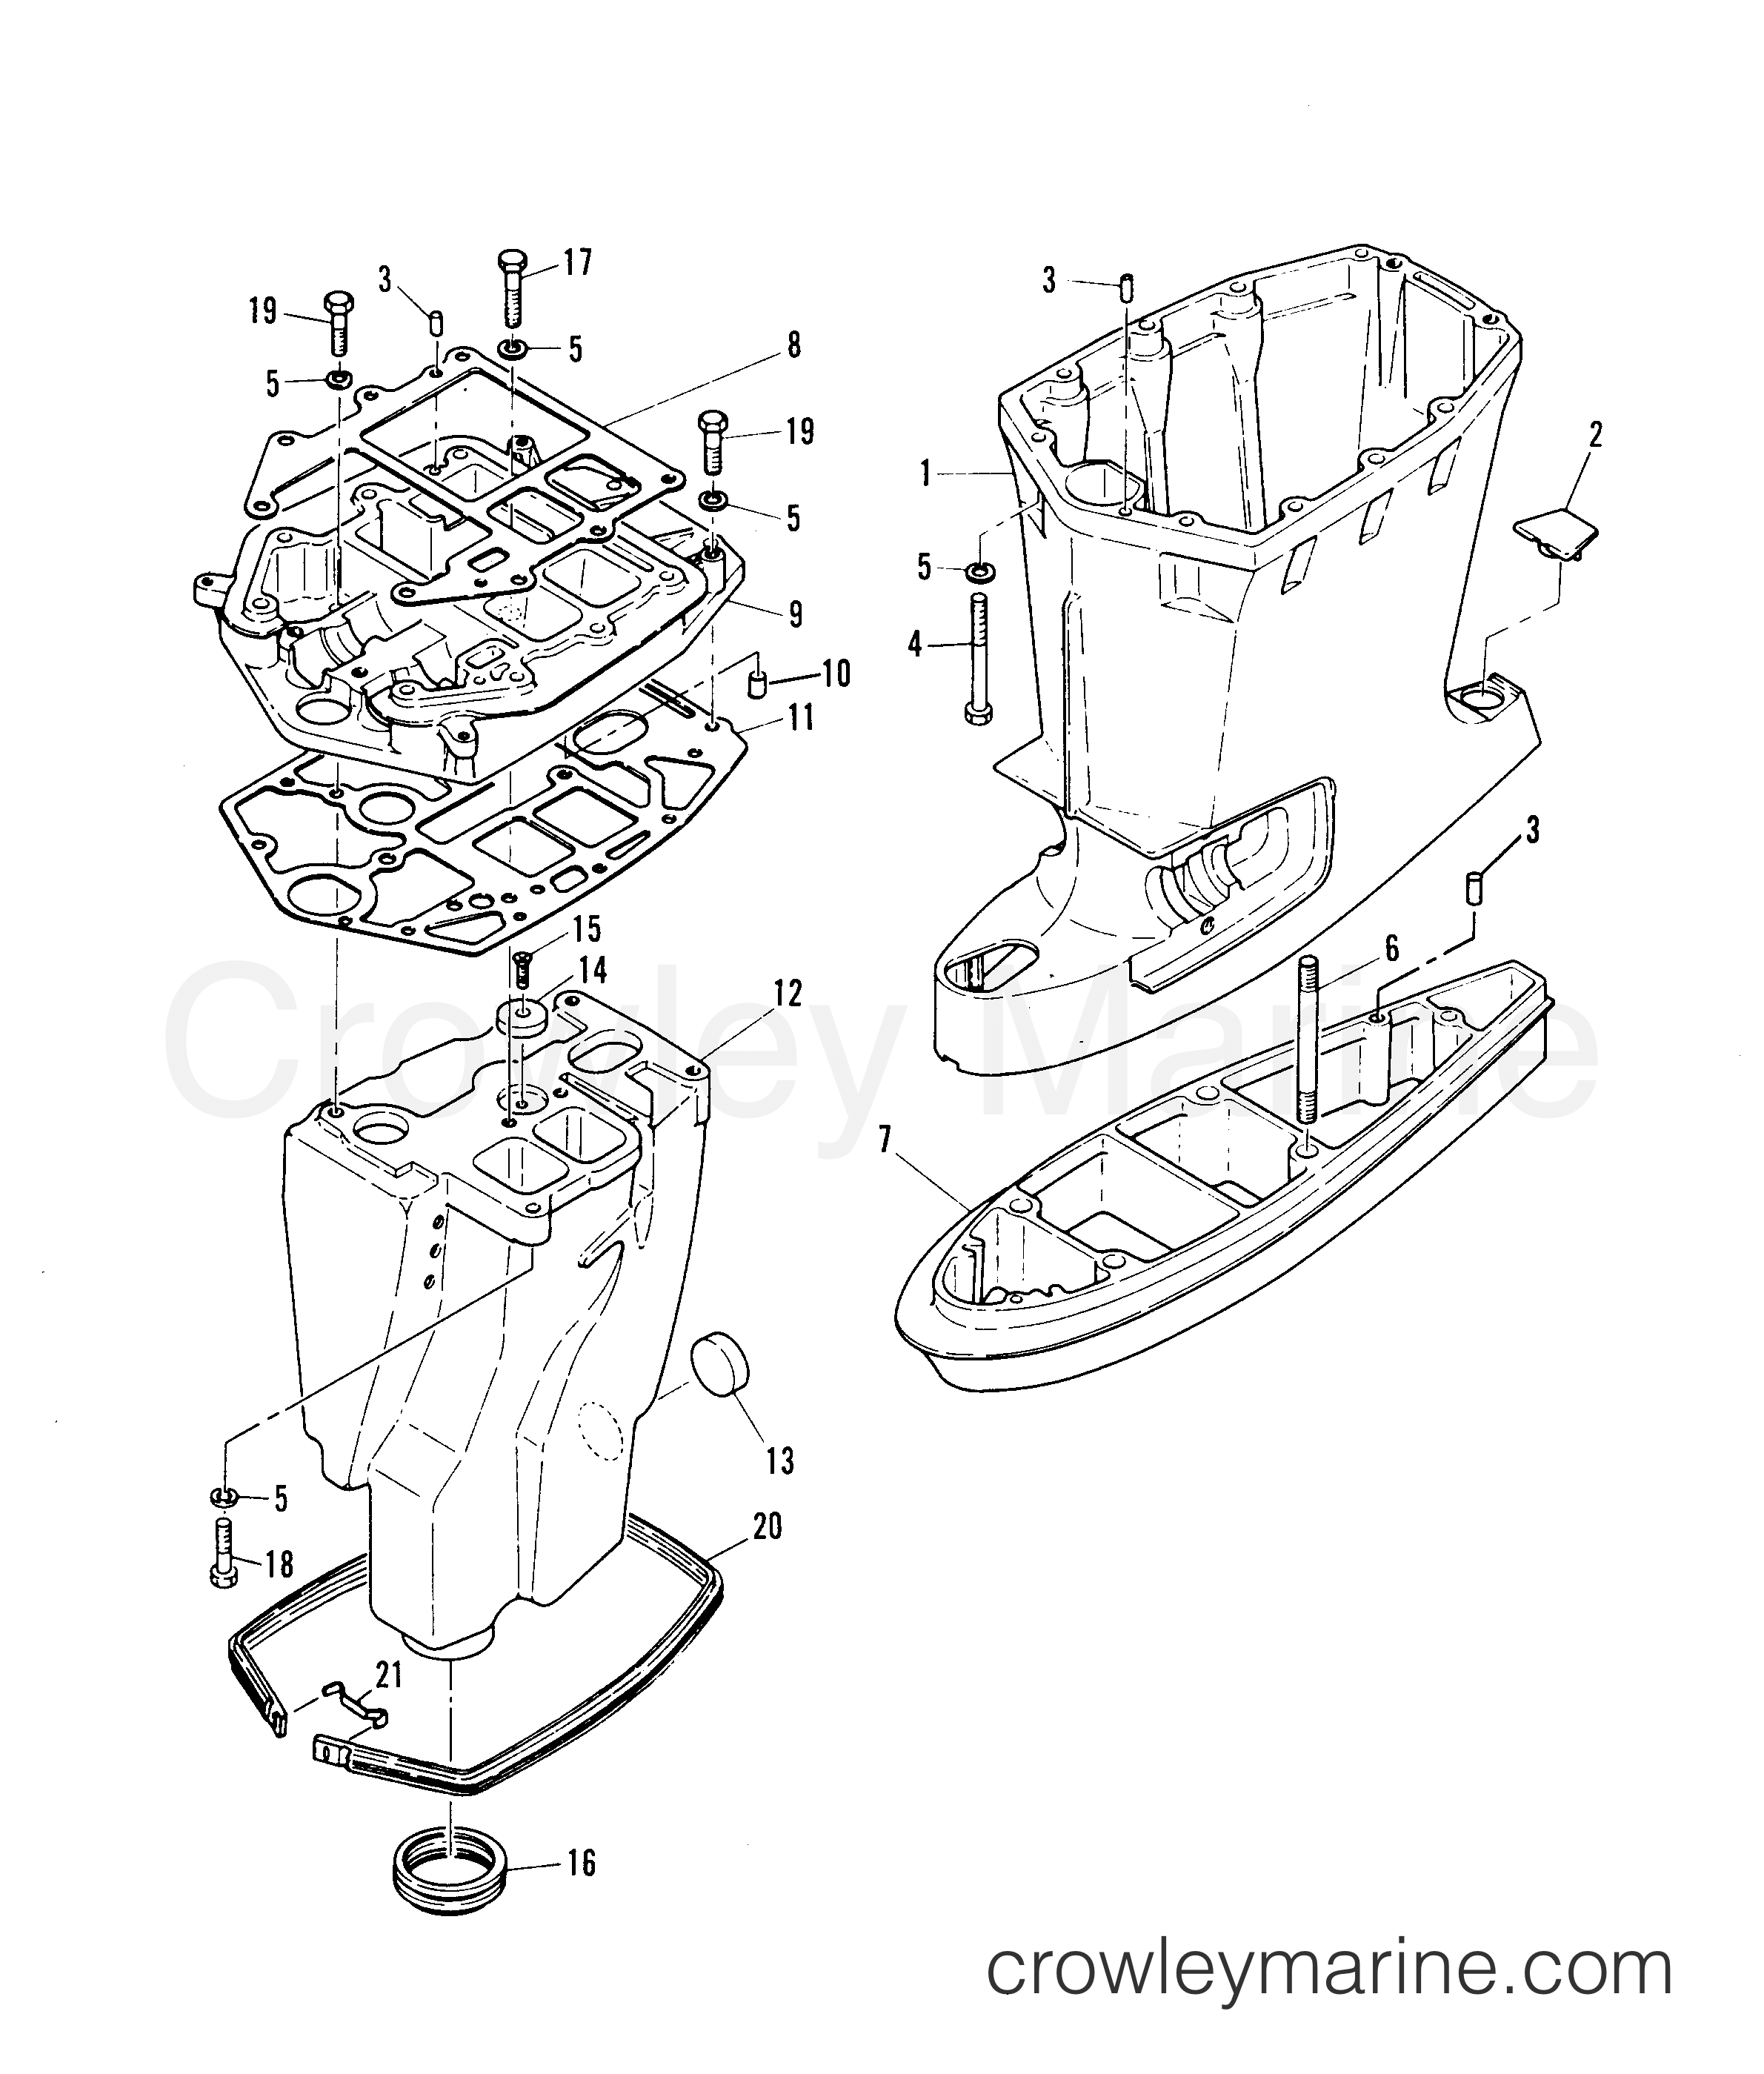 1984 Mariner Outboard 55 [ML] - 7055324 - DRIVESHAFT HOUSING section